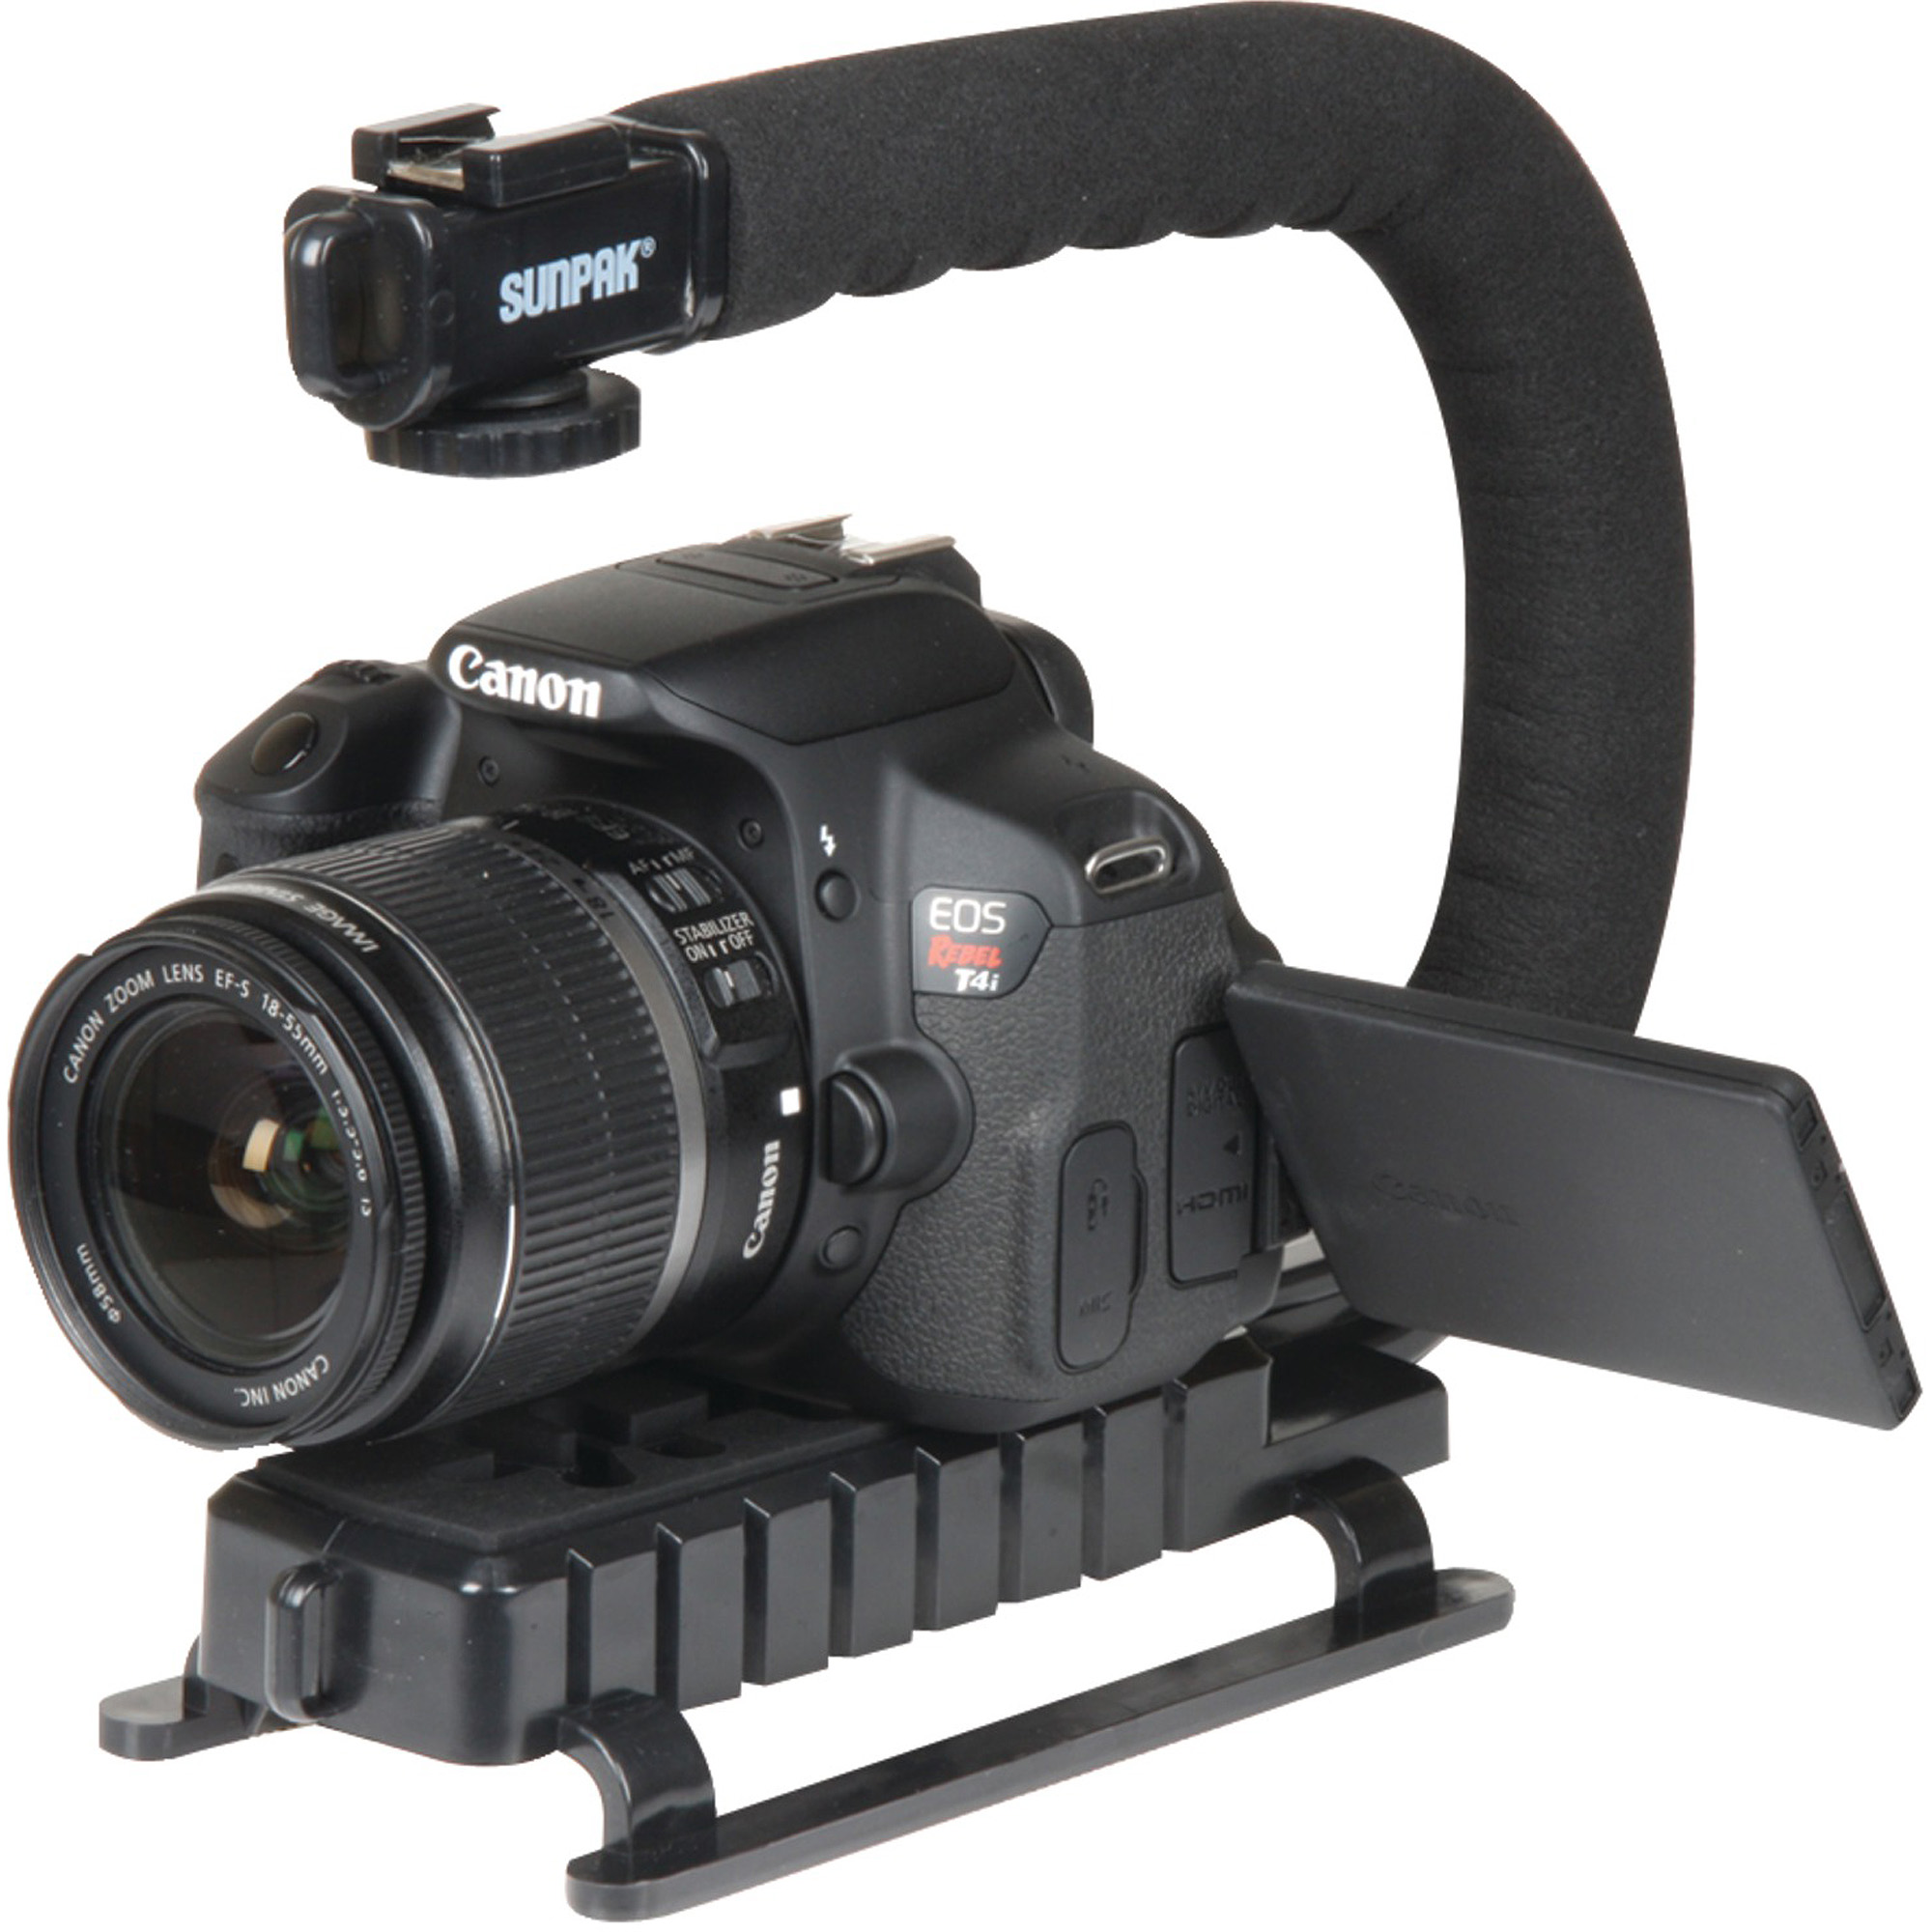 Sunpak VLB-GRIP Video Action Grip